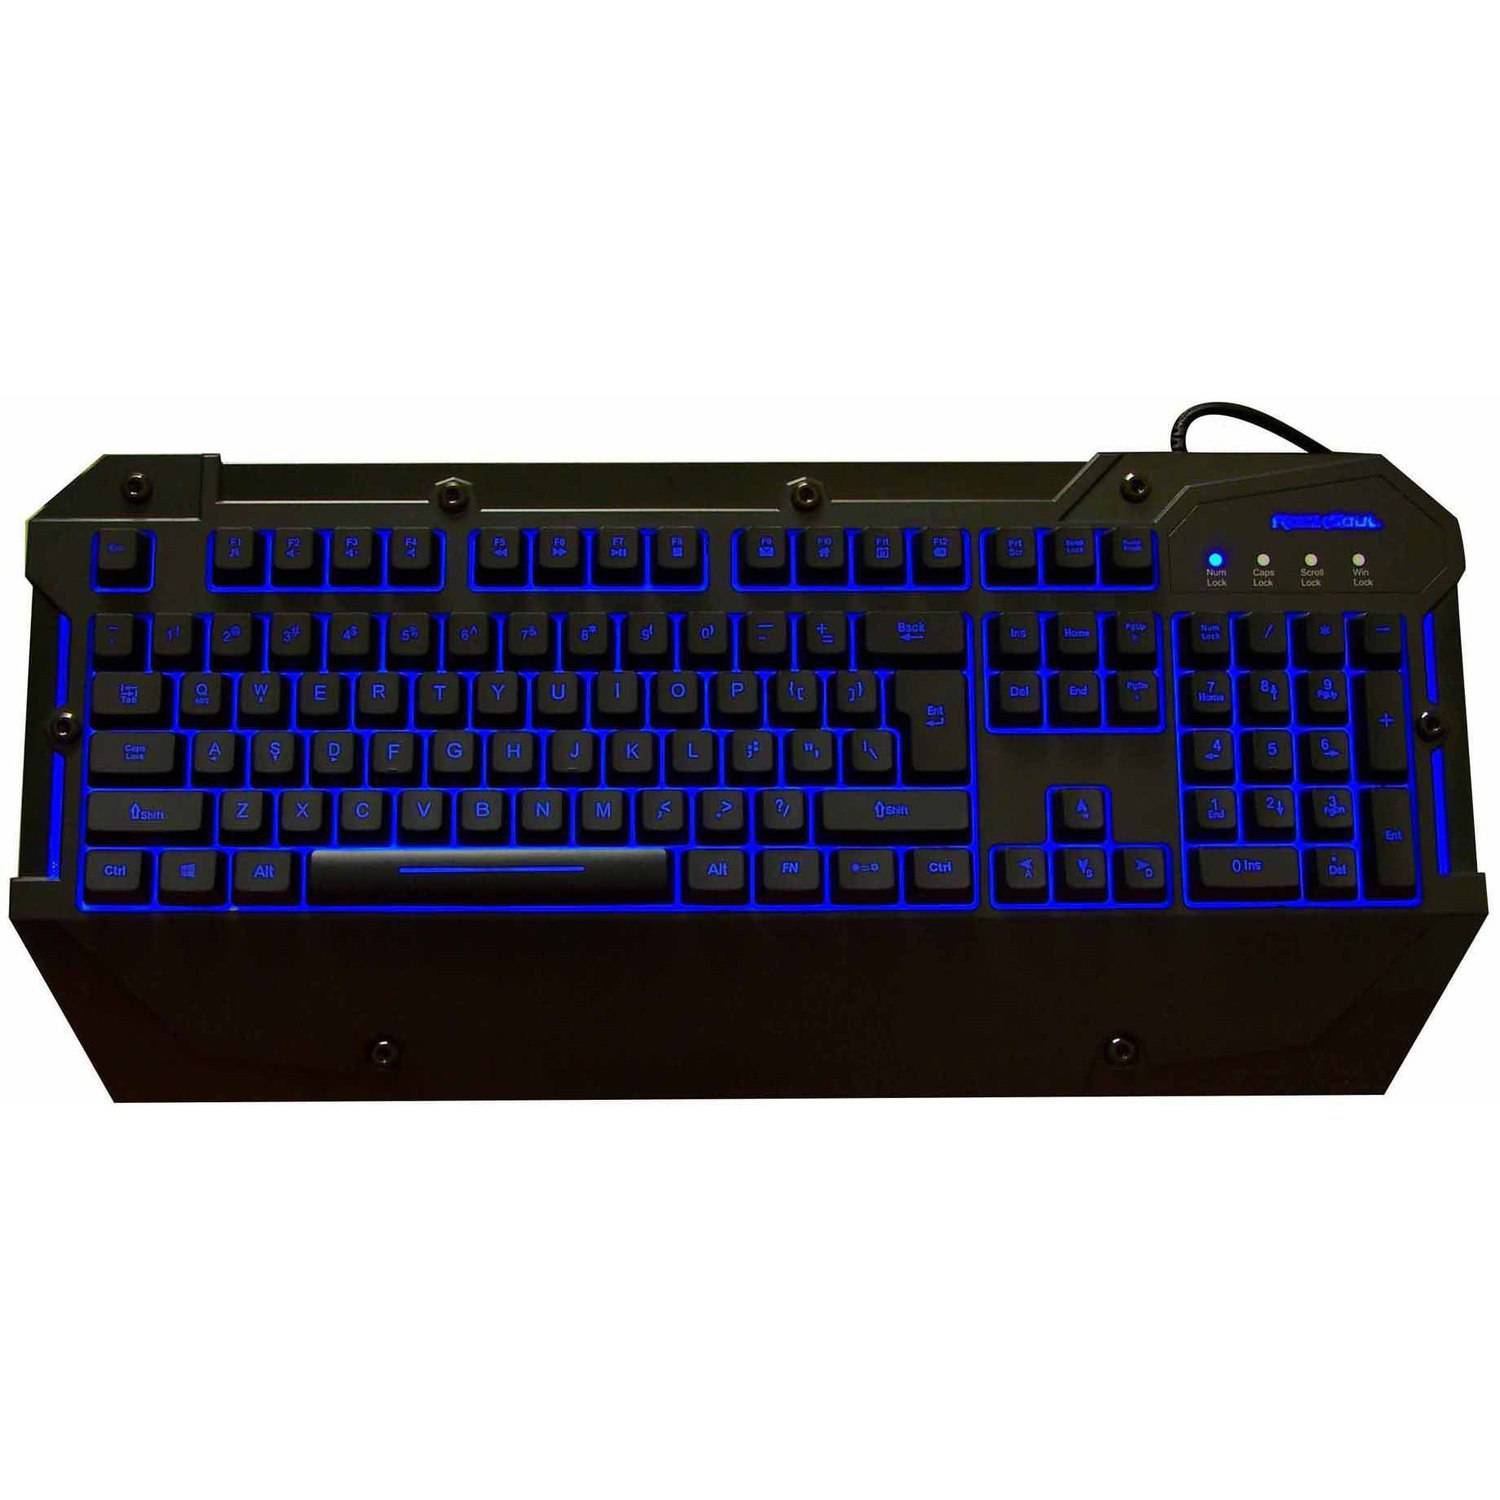 Rocksoul RSKB-00115 Gaming Keyboard, Black